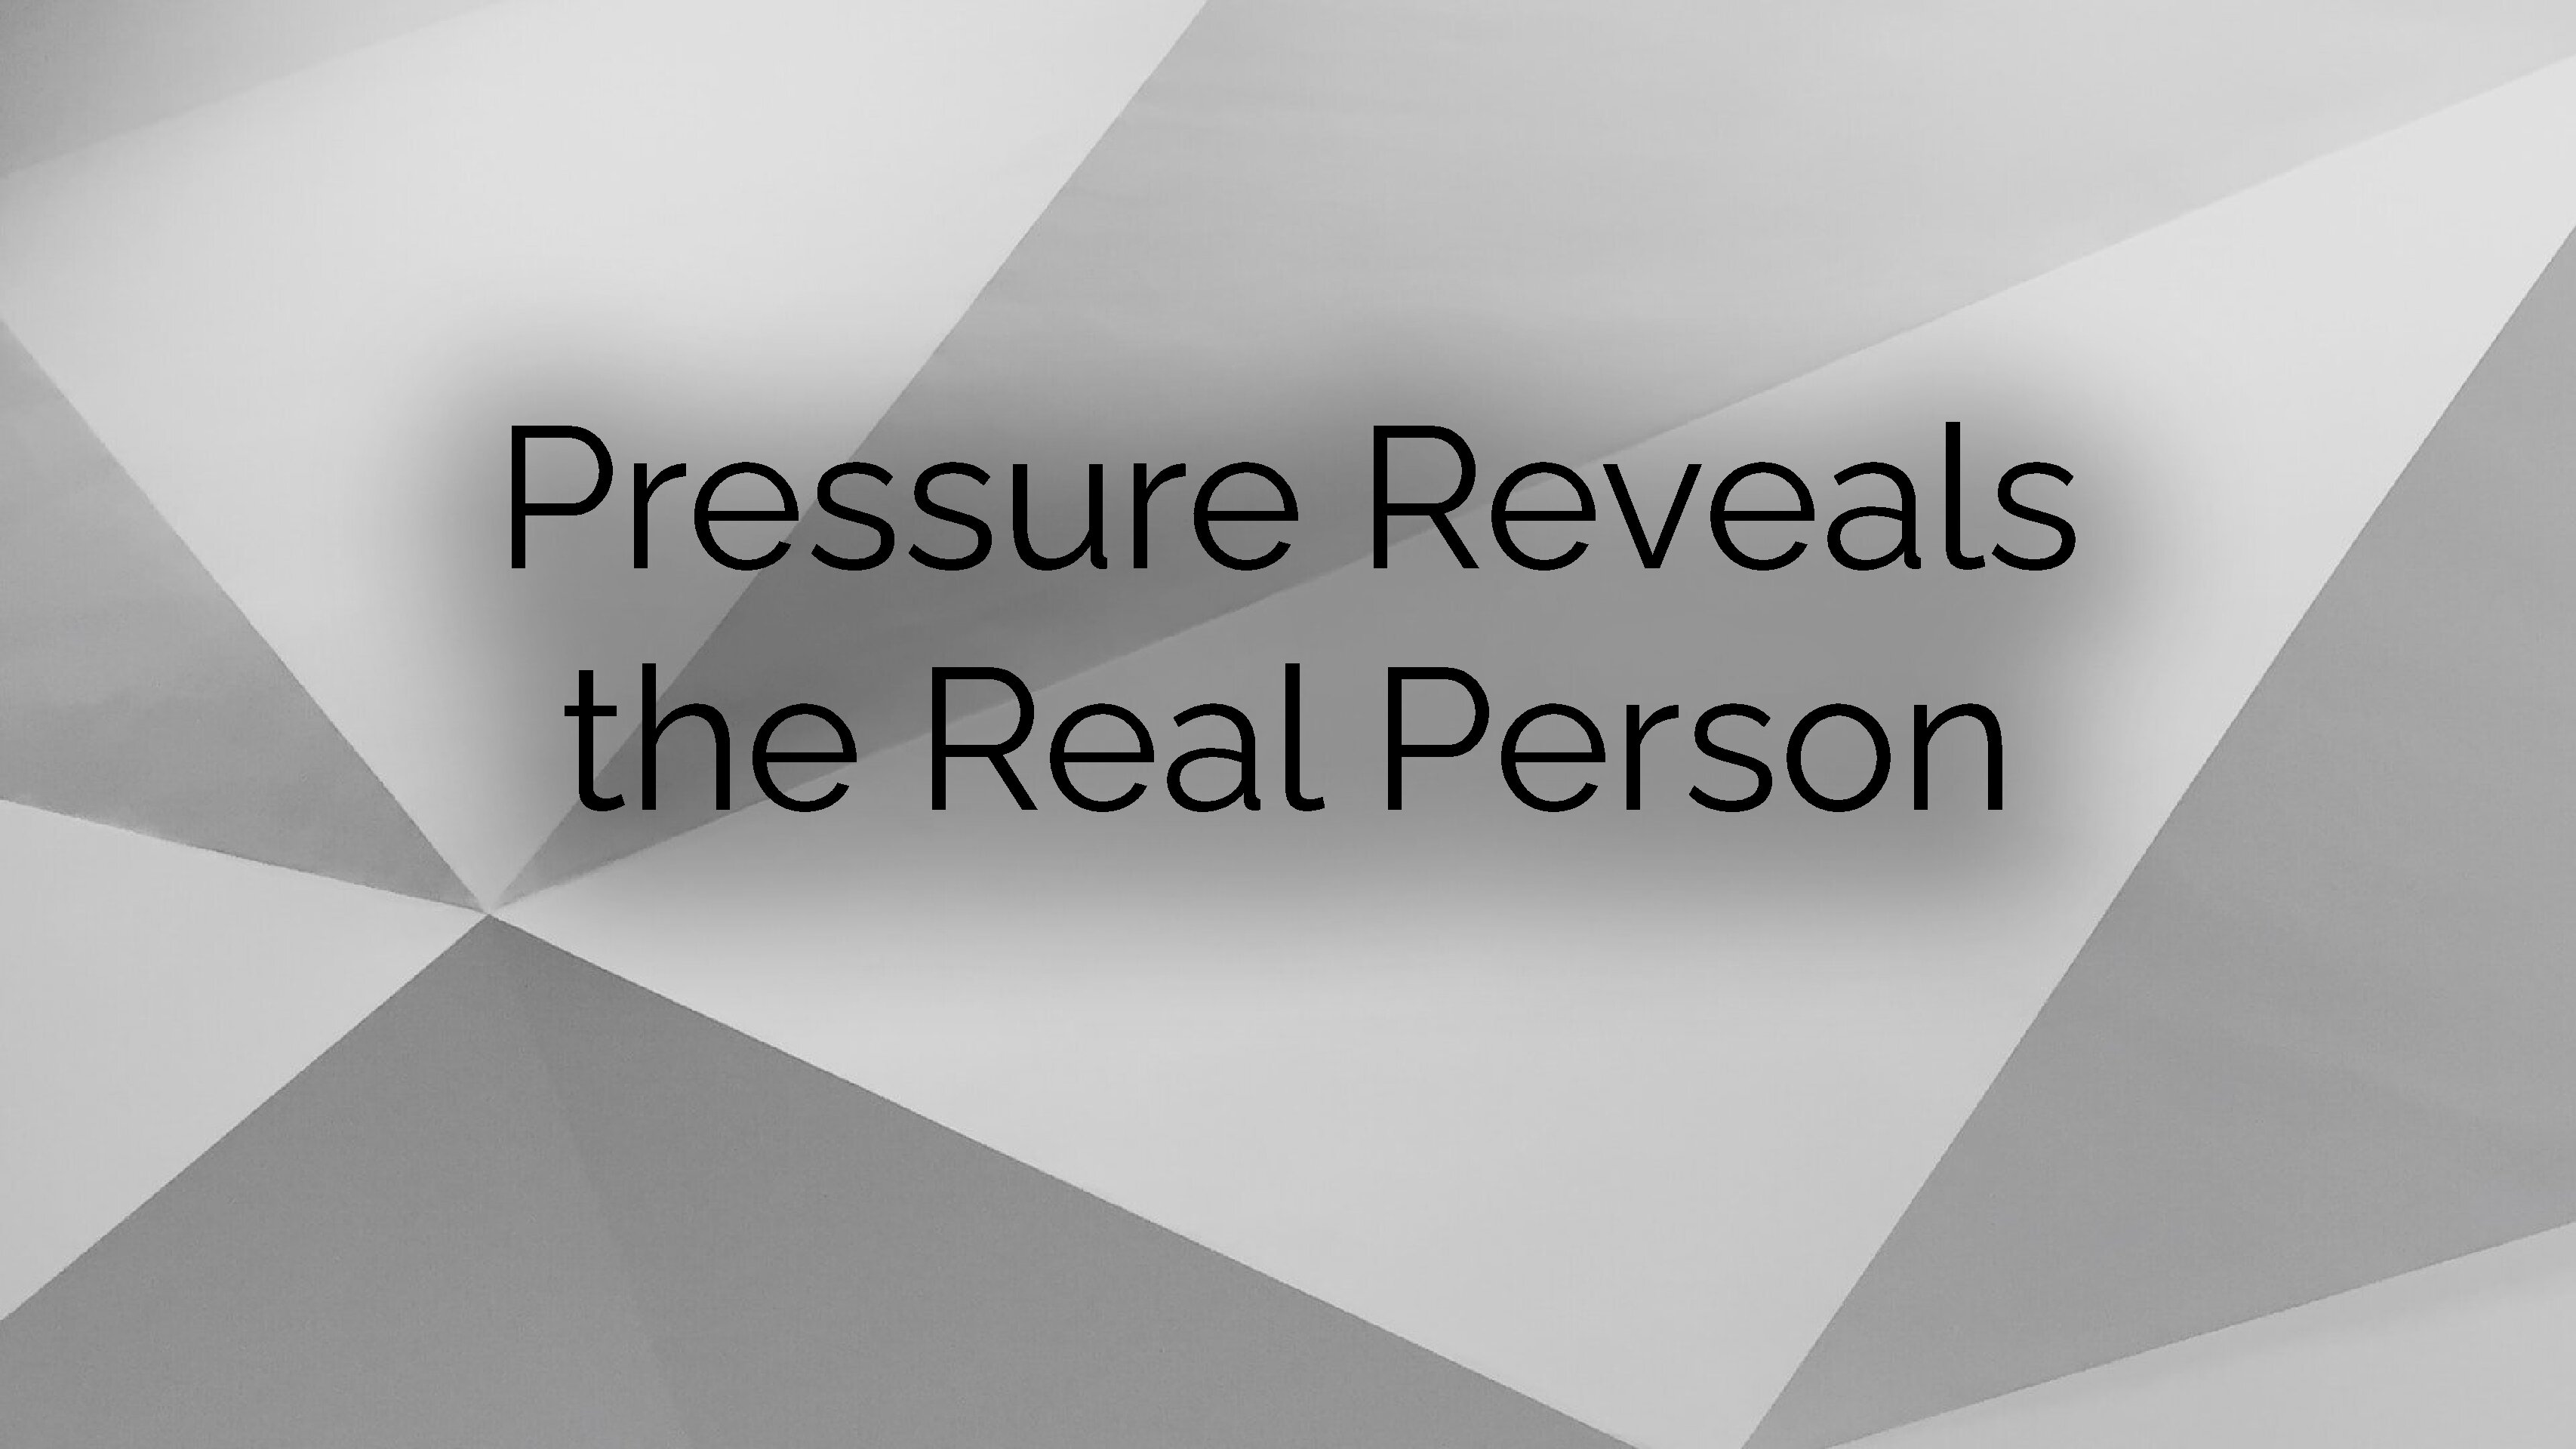 Pressure Reveals the Real Person